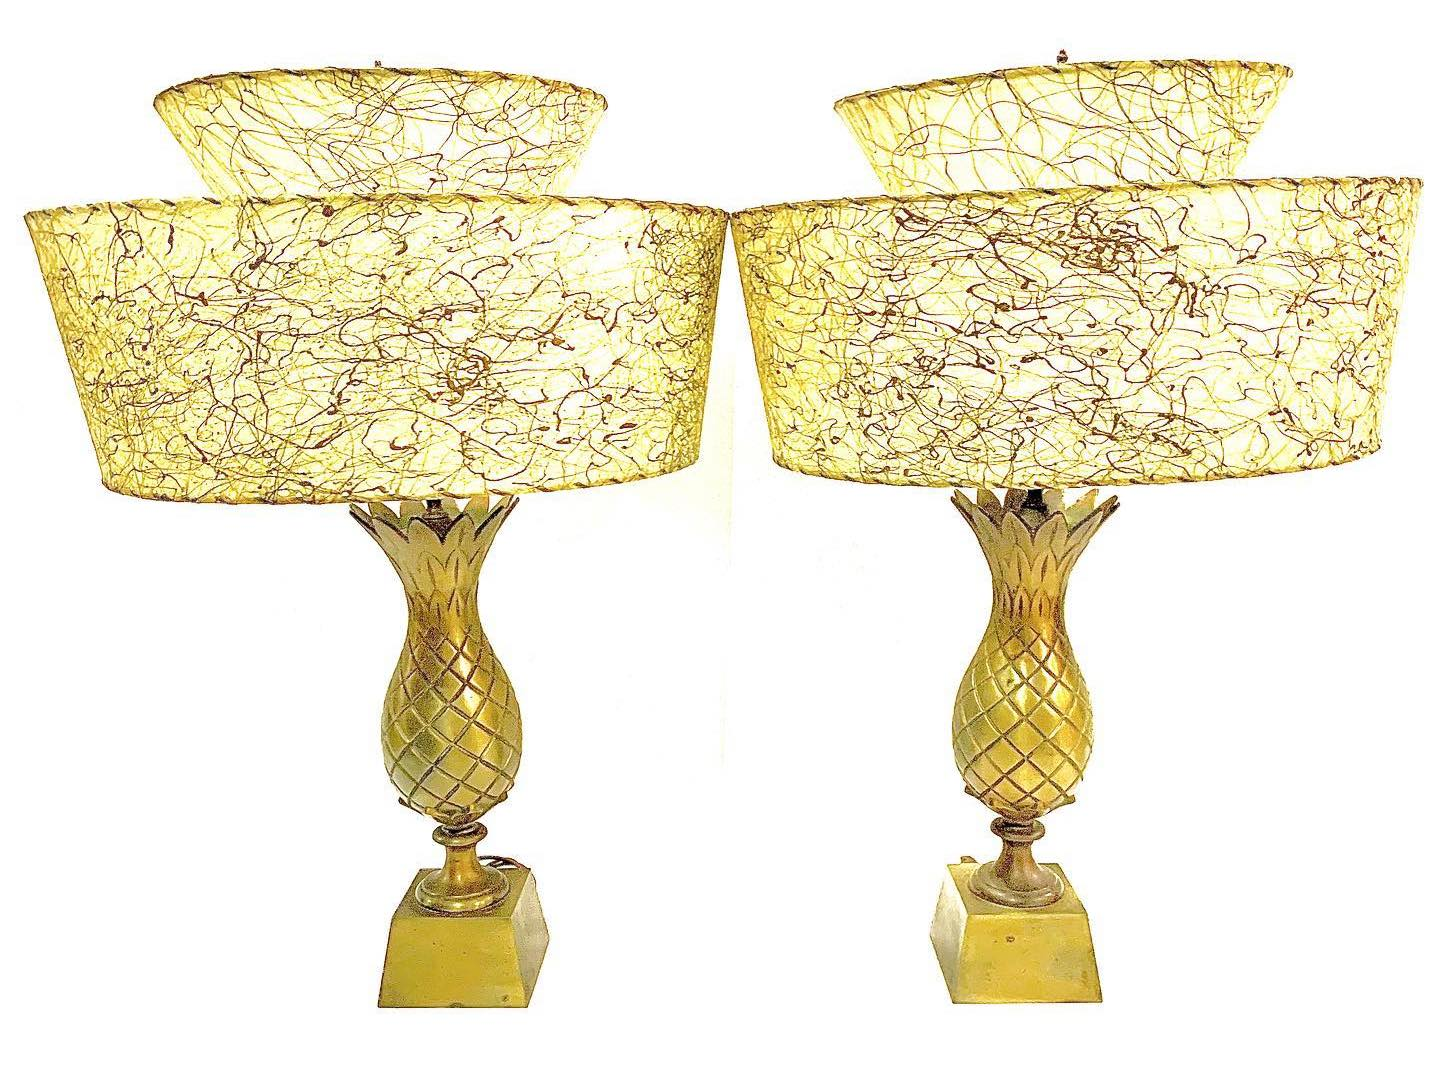 Pair of vintage brass pineapple lamps with two-tier fiberglass shades